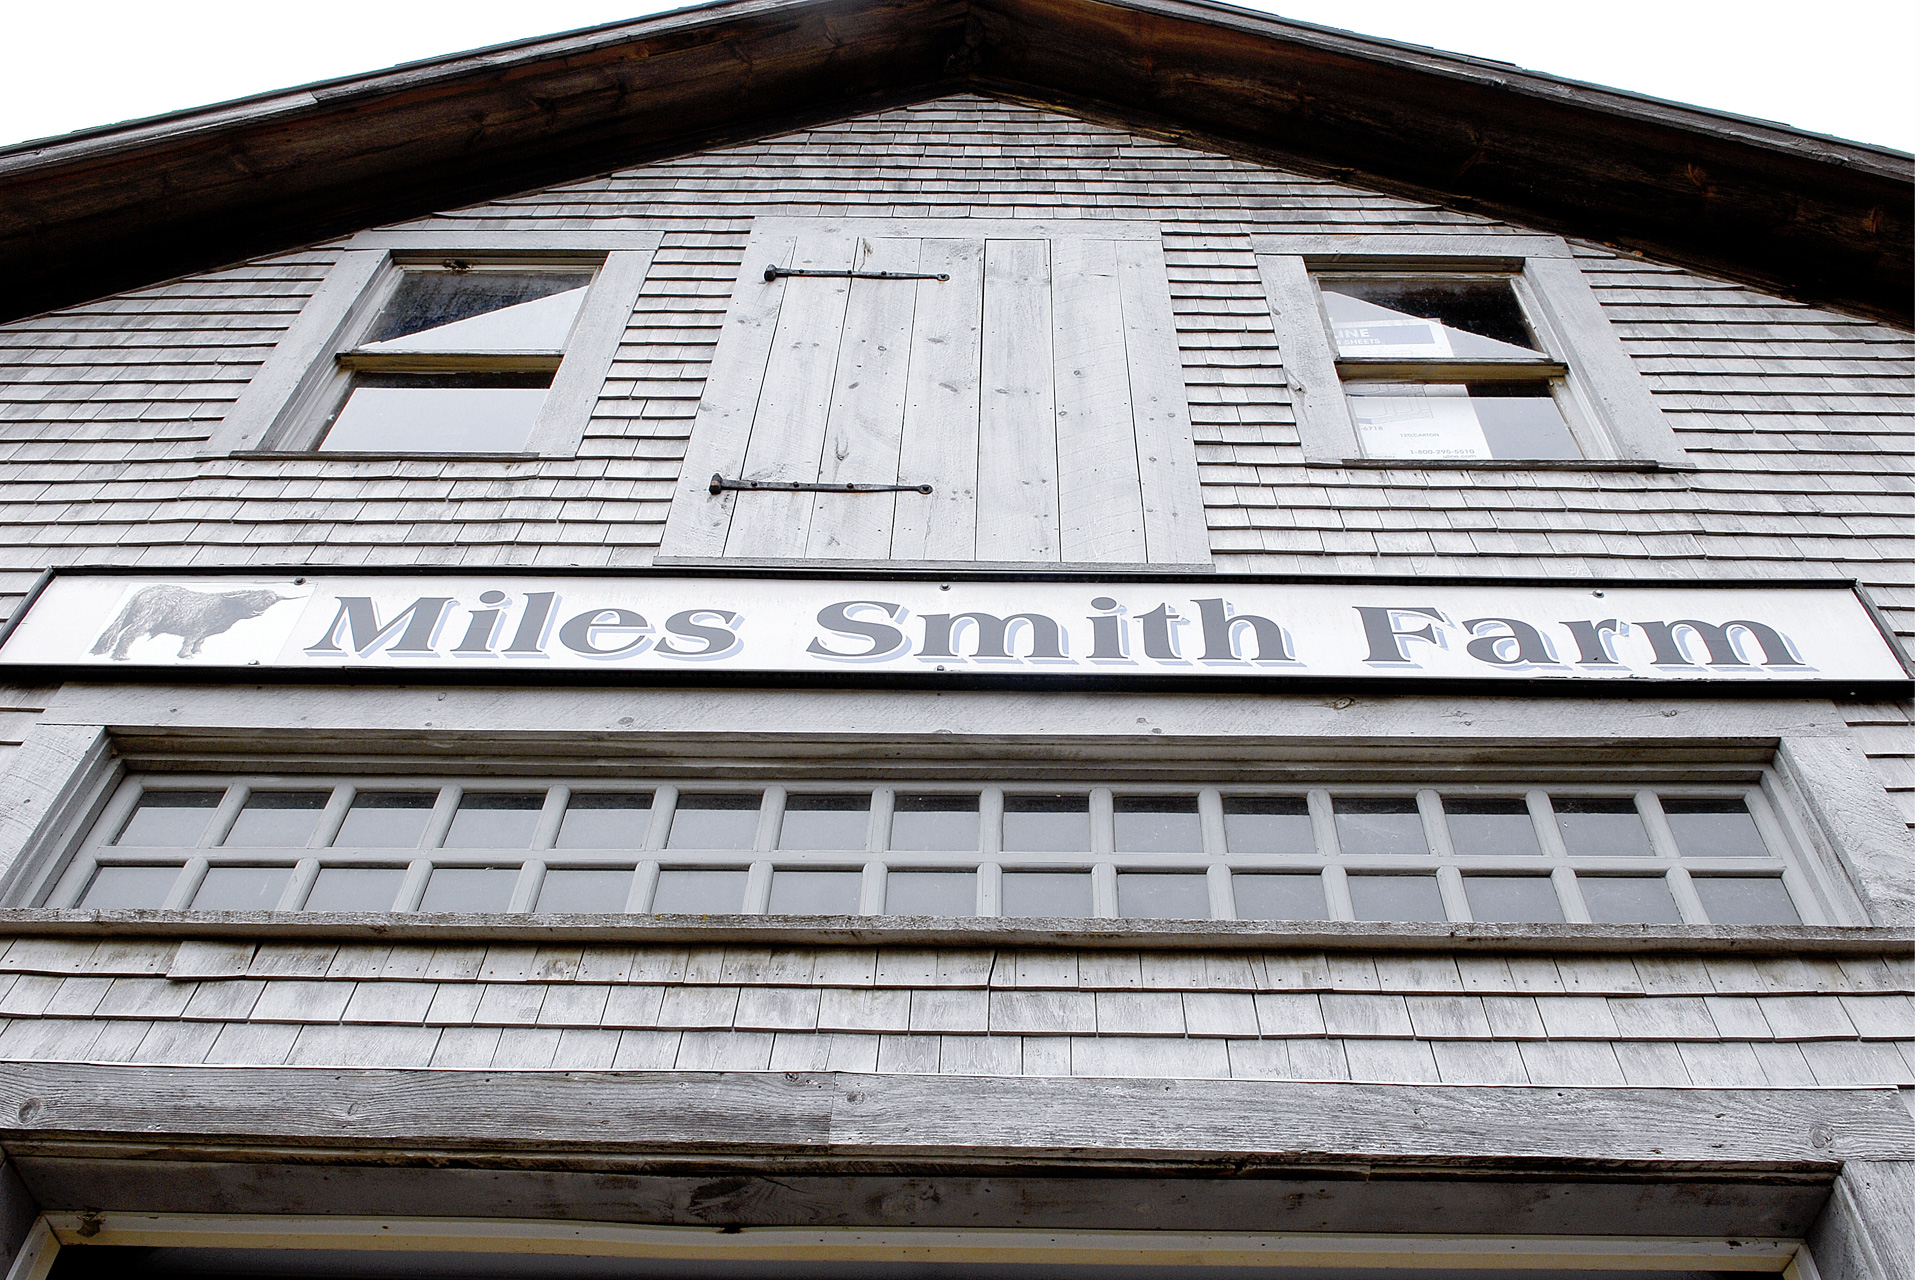 Barn with large sign that says Miles Smith Farm